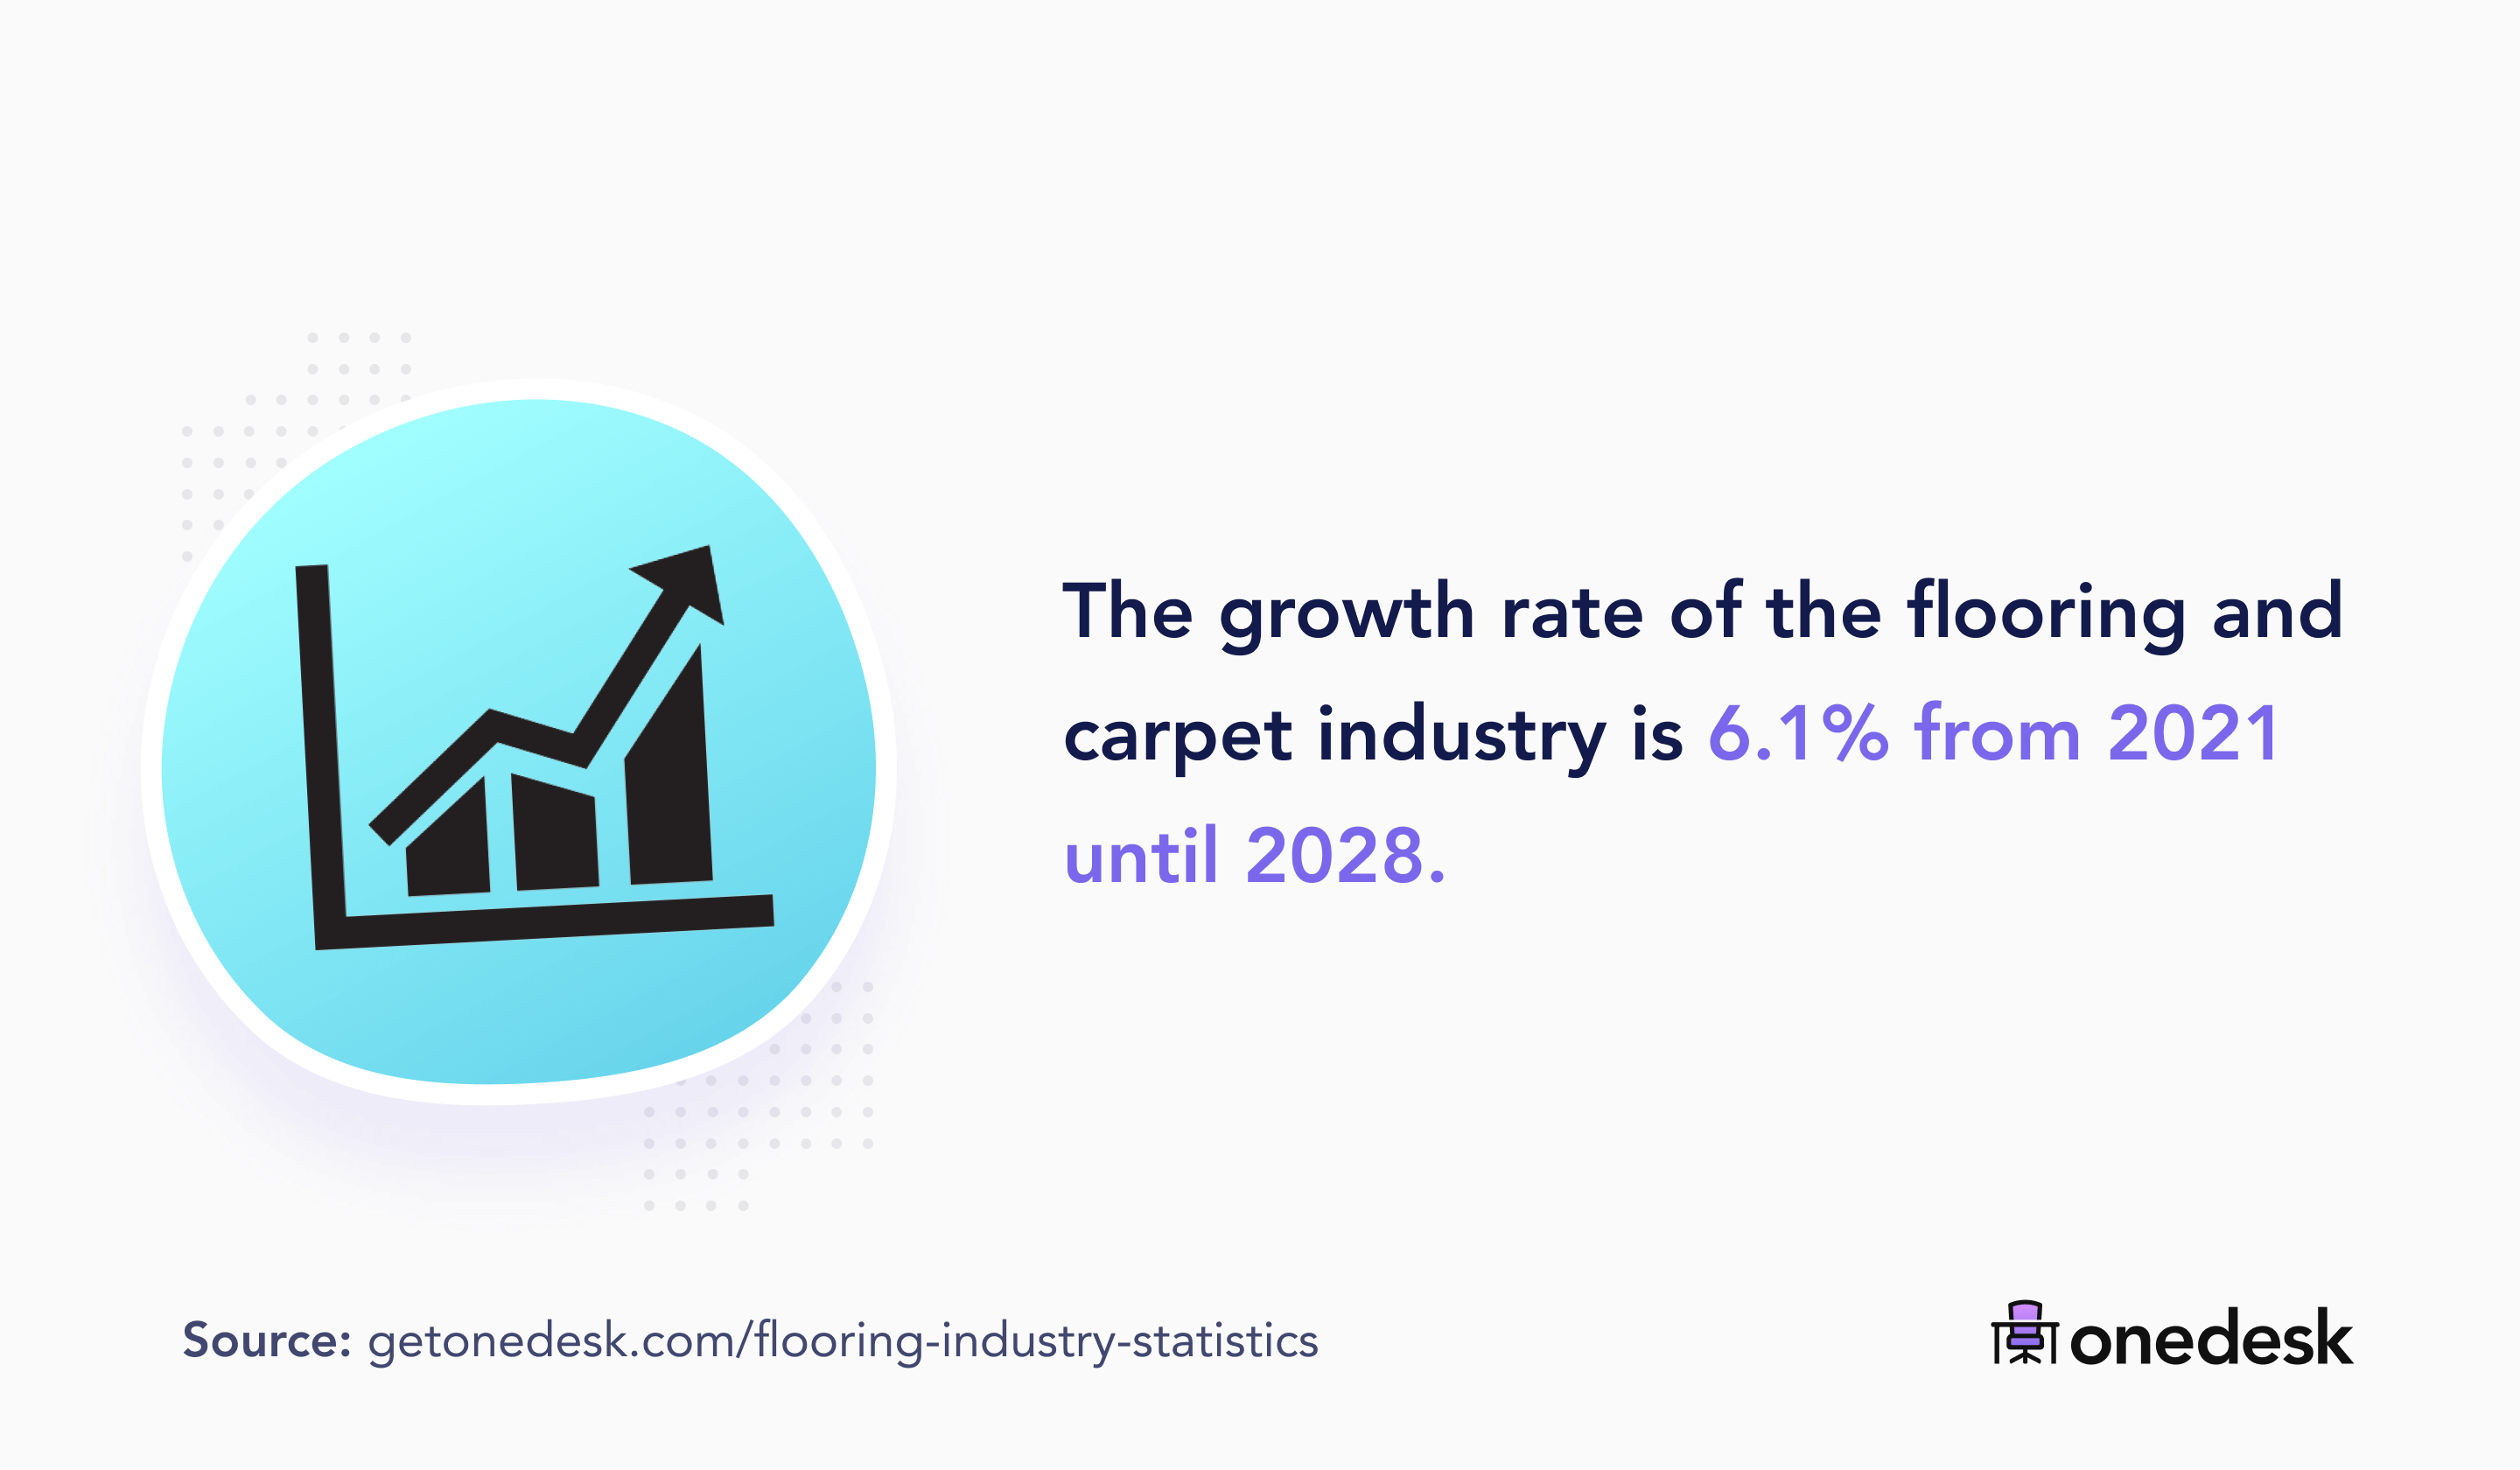 flooring and carpet industry growth